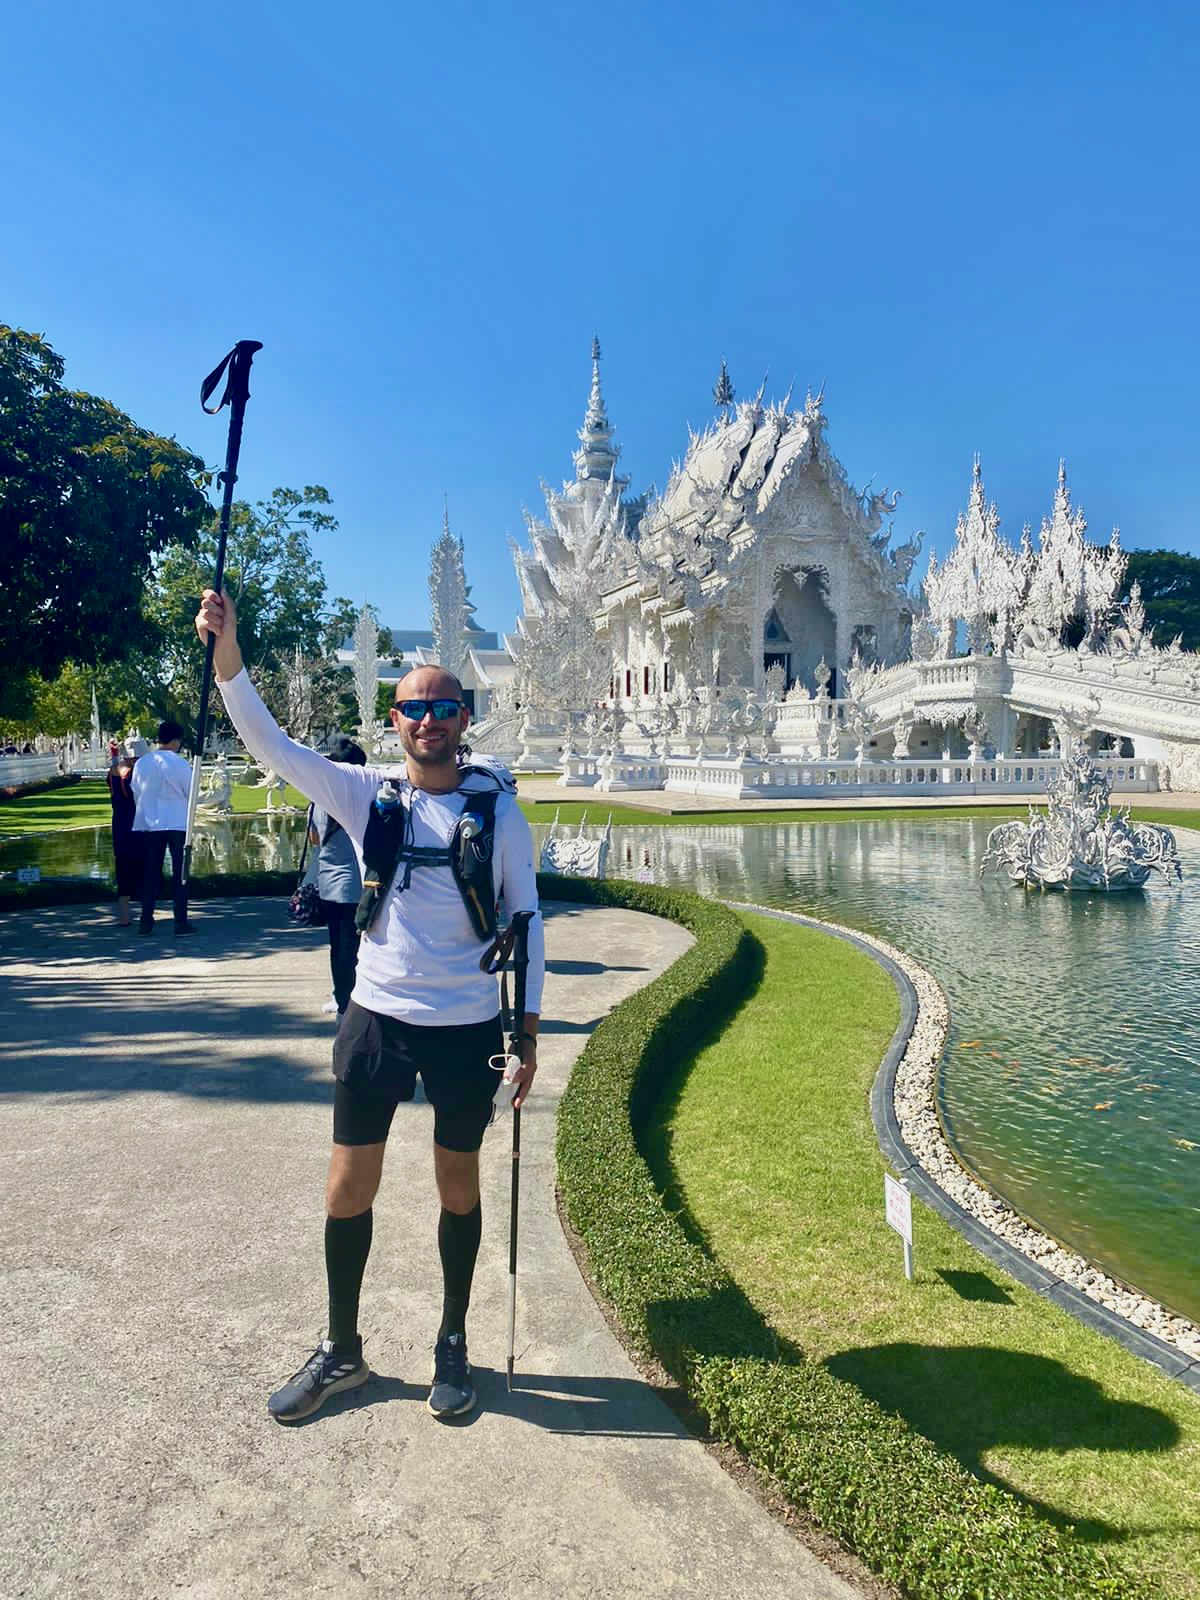 Wat Rong Khun, also known as The White Temple in Chiang Rai